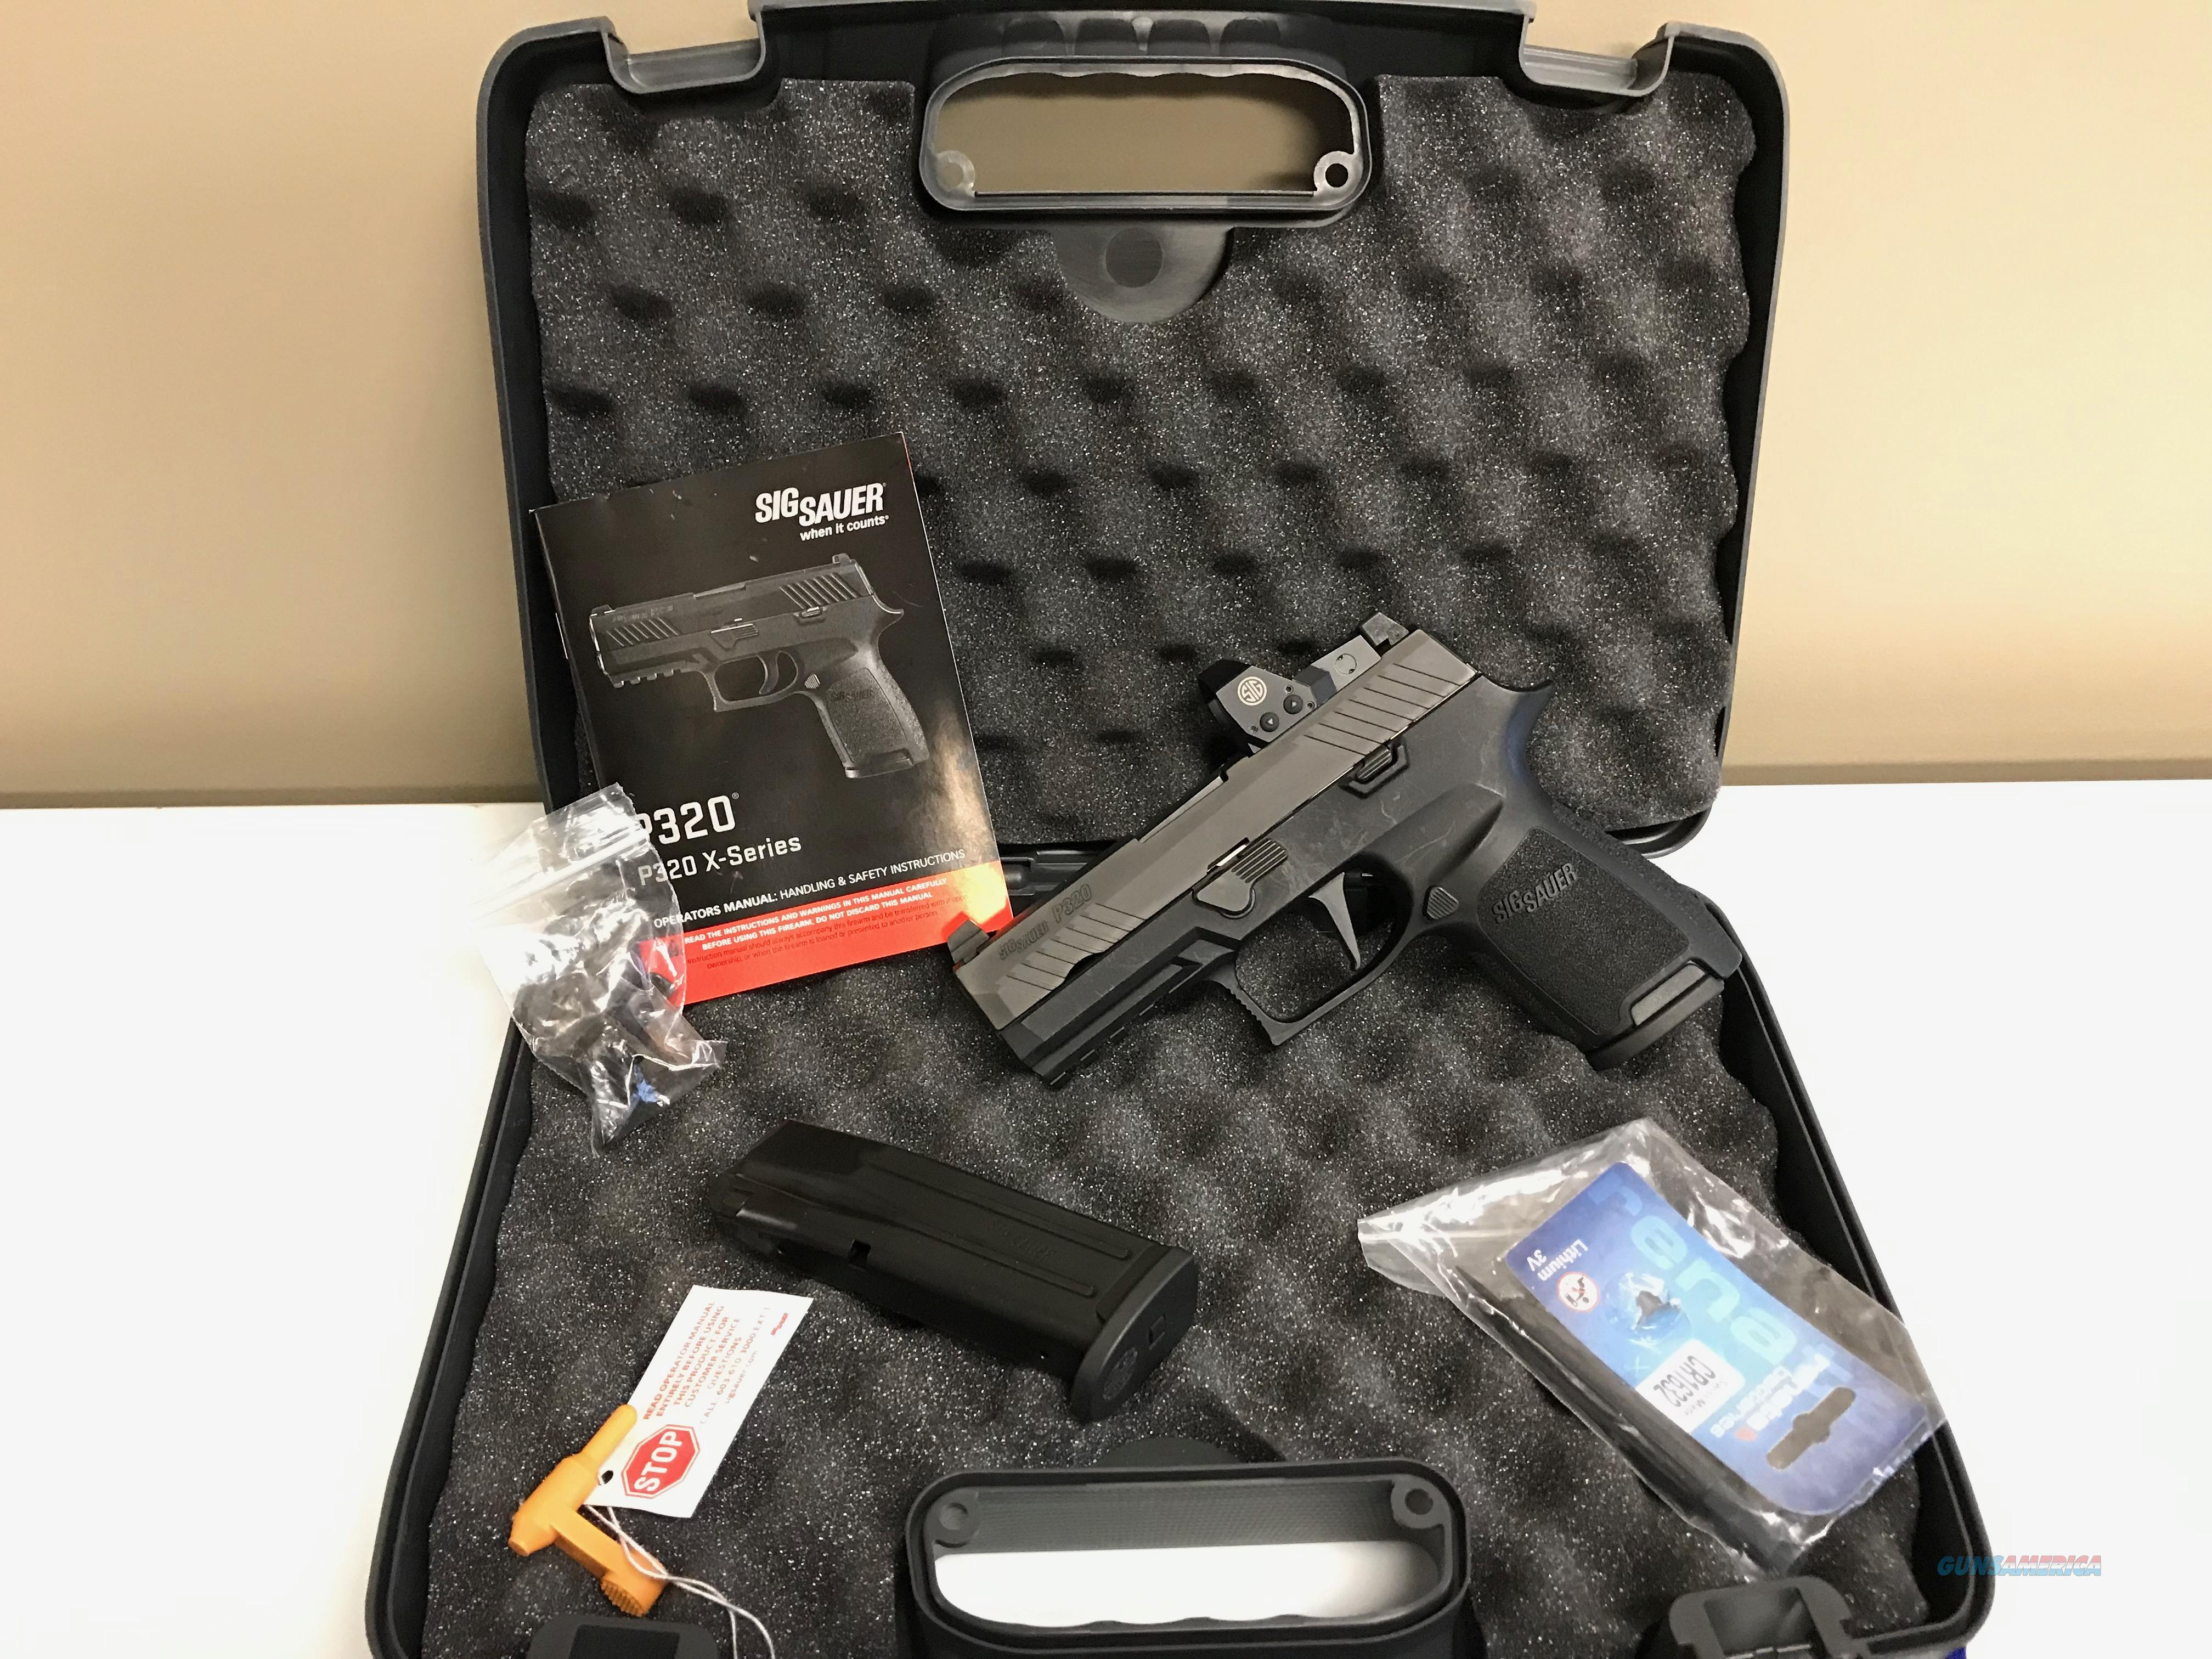 USED Sig Sauer P320 9mm Compact RX w/2 Mags!  Guns > Pistols > Sig - Sauer/Sigarms Pistols > P320